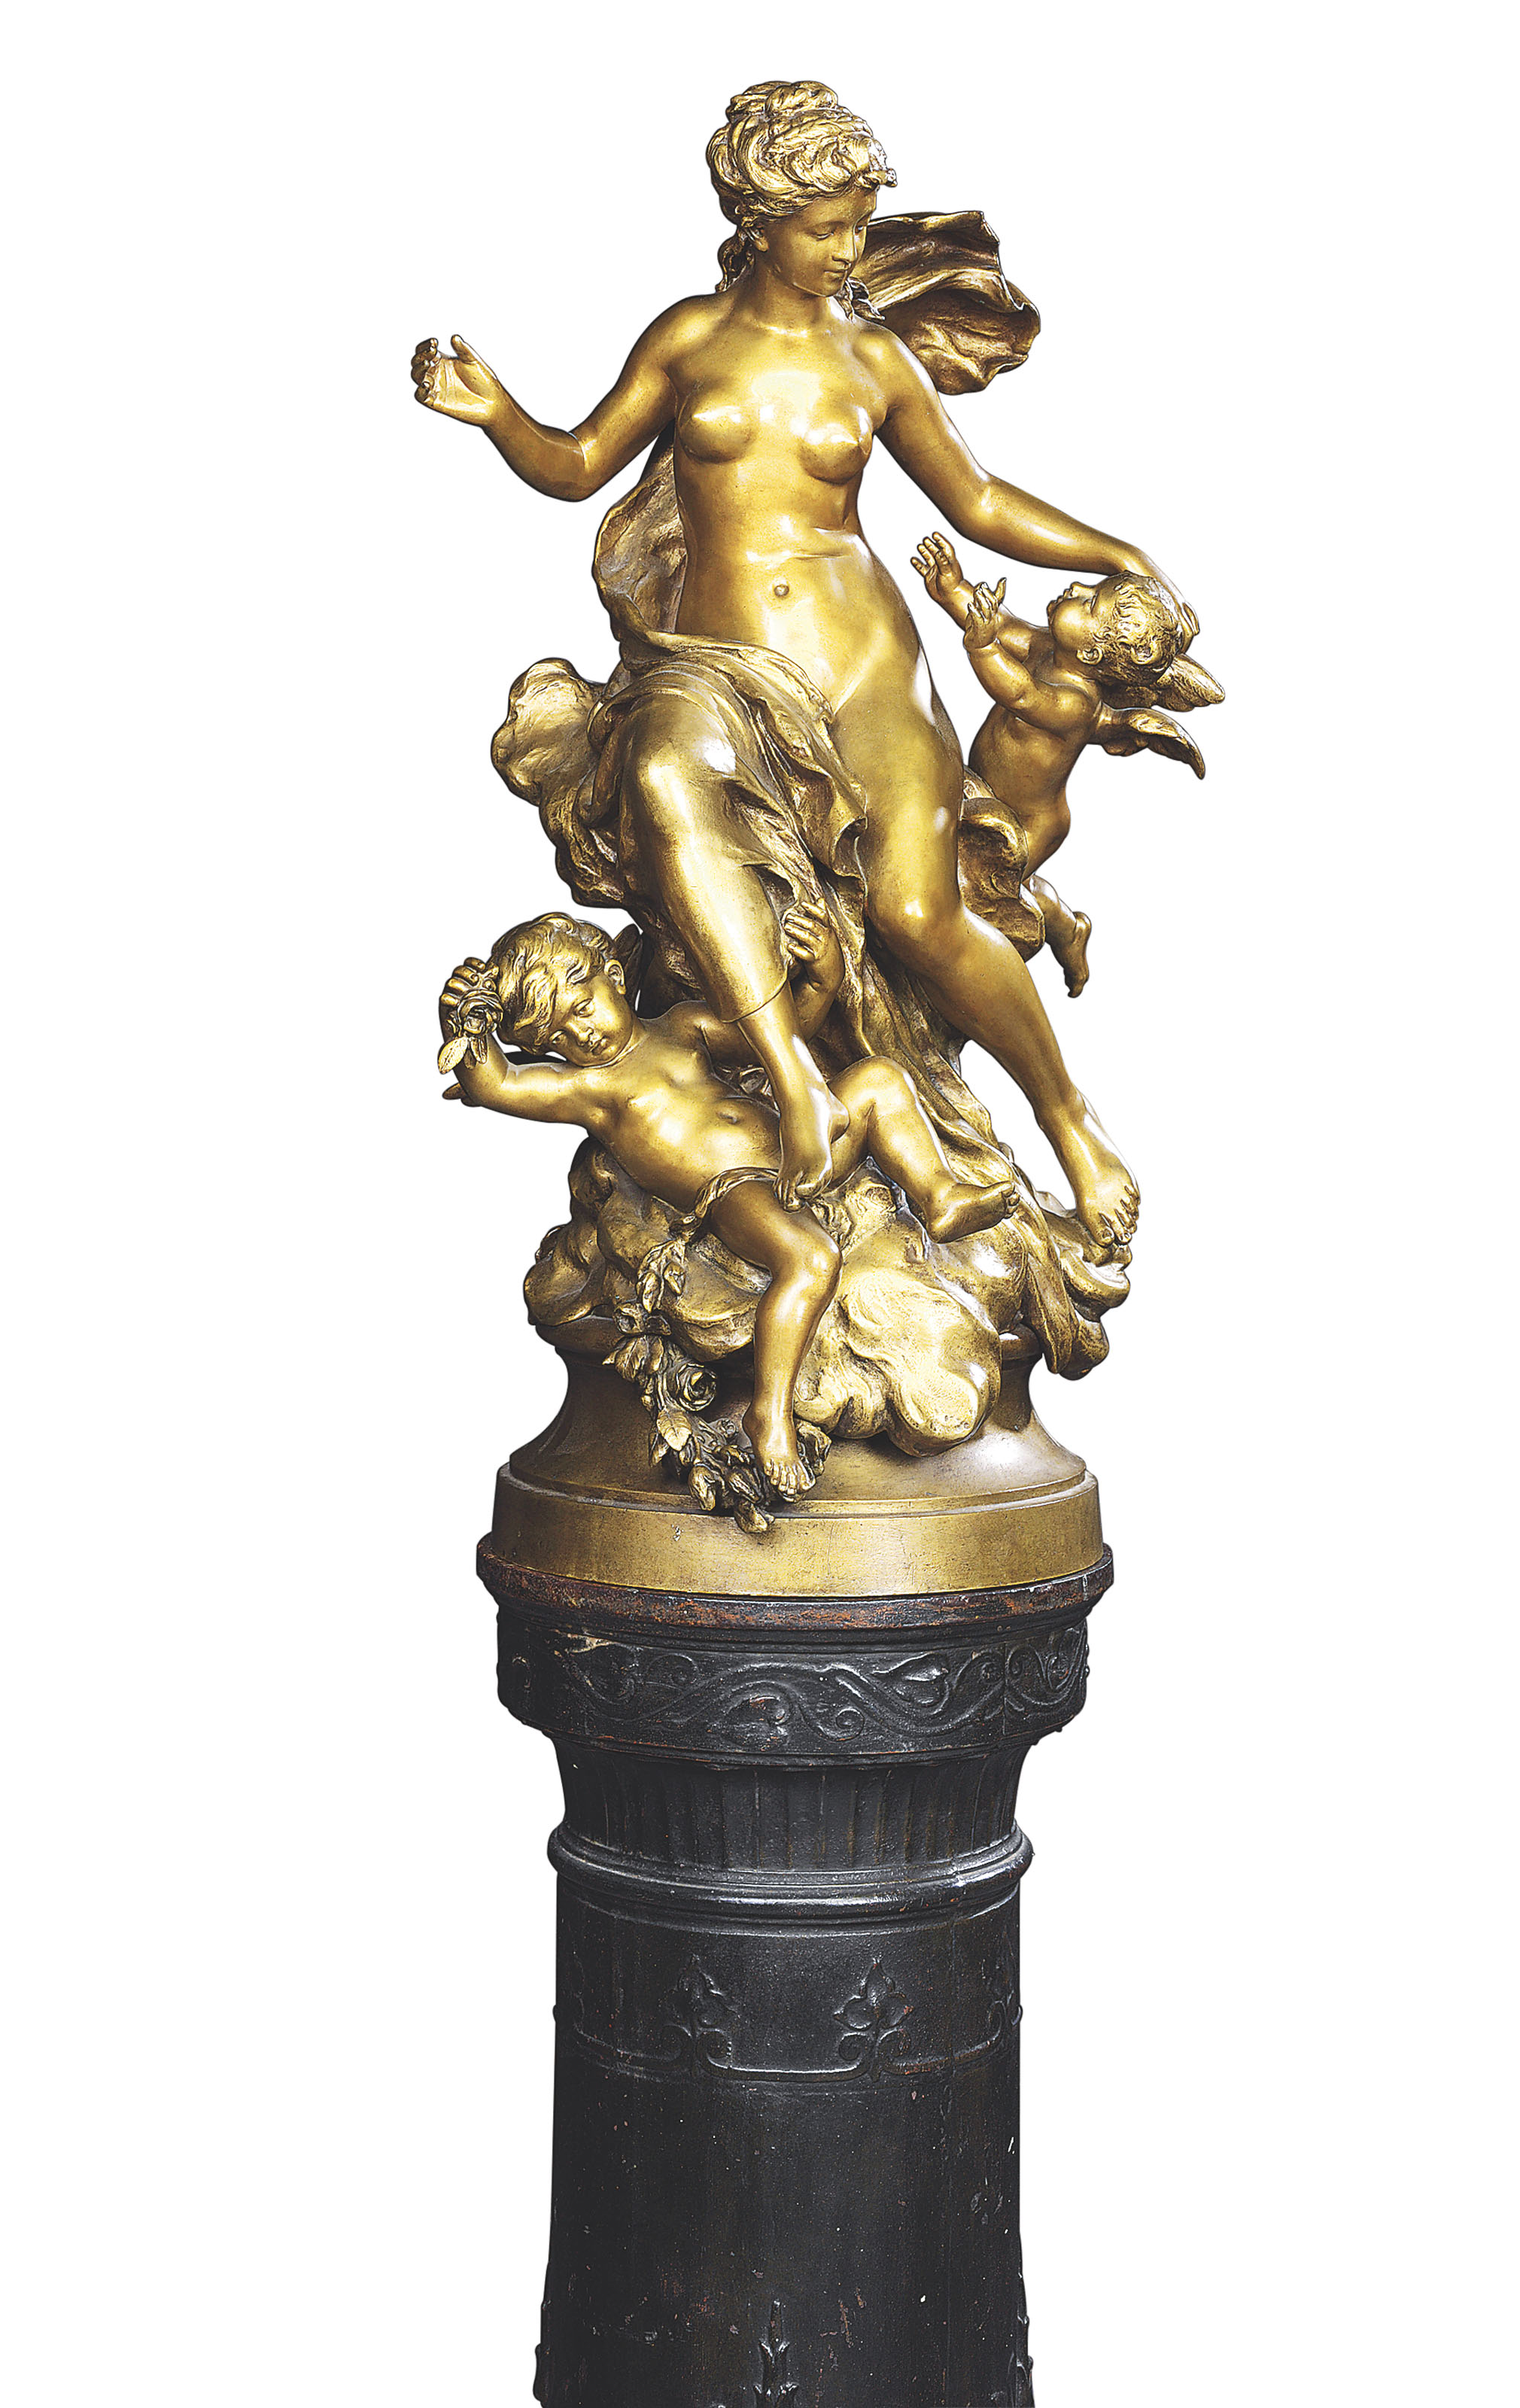 A FRENCH GILT-BRONZE GROUP OF VENUS AND PUTTI